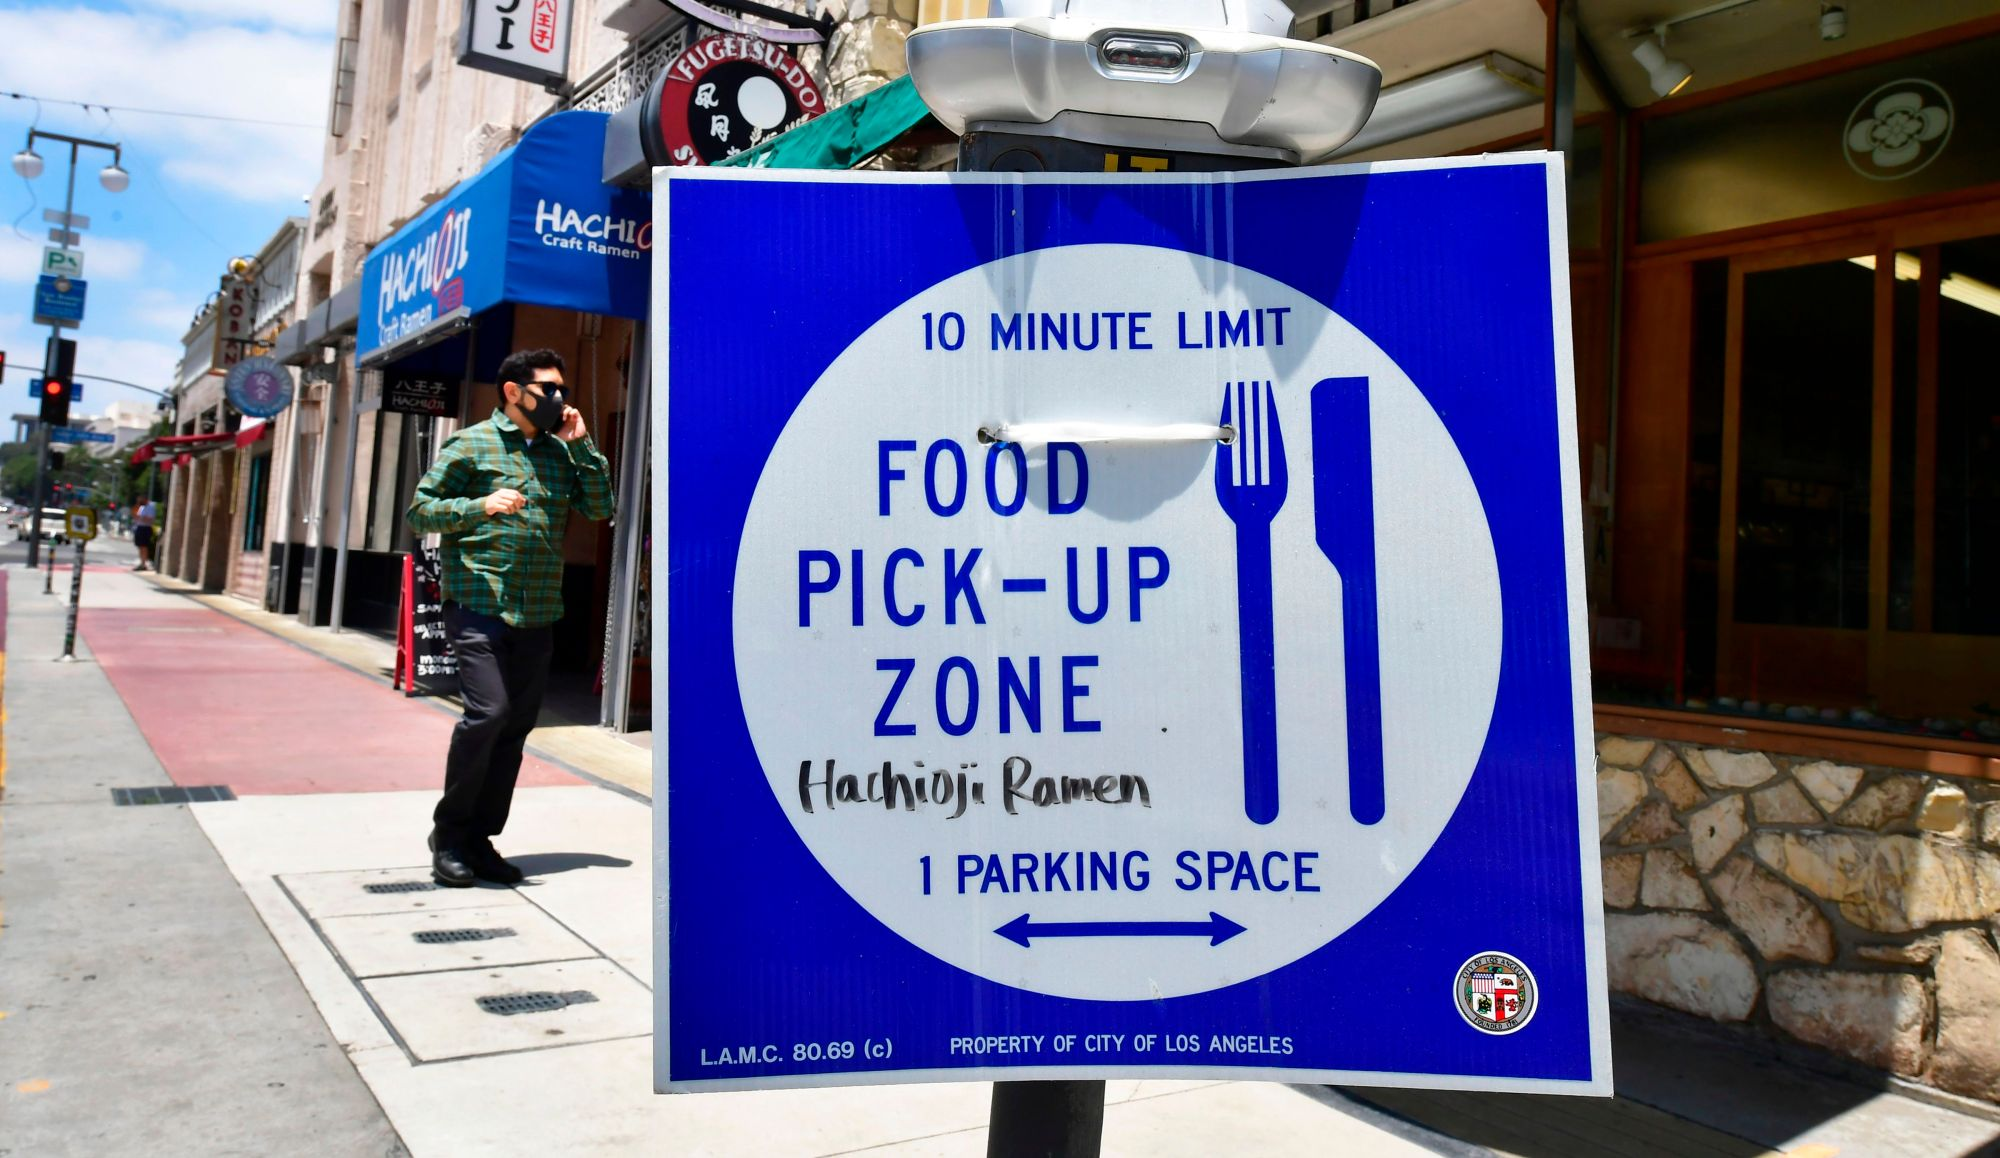 A pedestrian wearing a face mask walks past a sign for food pick-up outside a restaurant in Los Angeles on July 1, 2020, after indoor restaurants, bars and movie theaters across much of California were ordered to close for at least three weeks. (FREDERIC J. BROWN/ Getty Images)